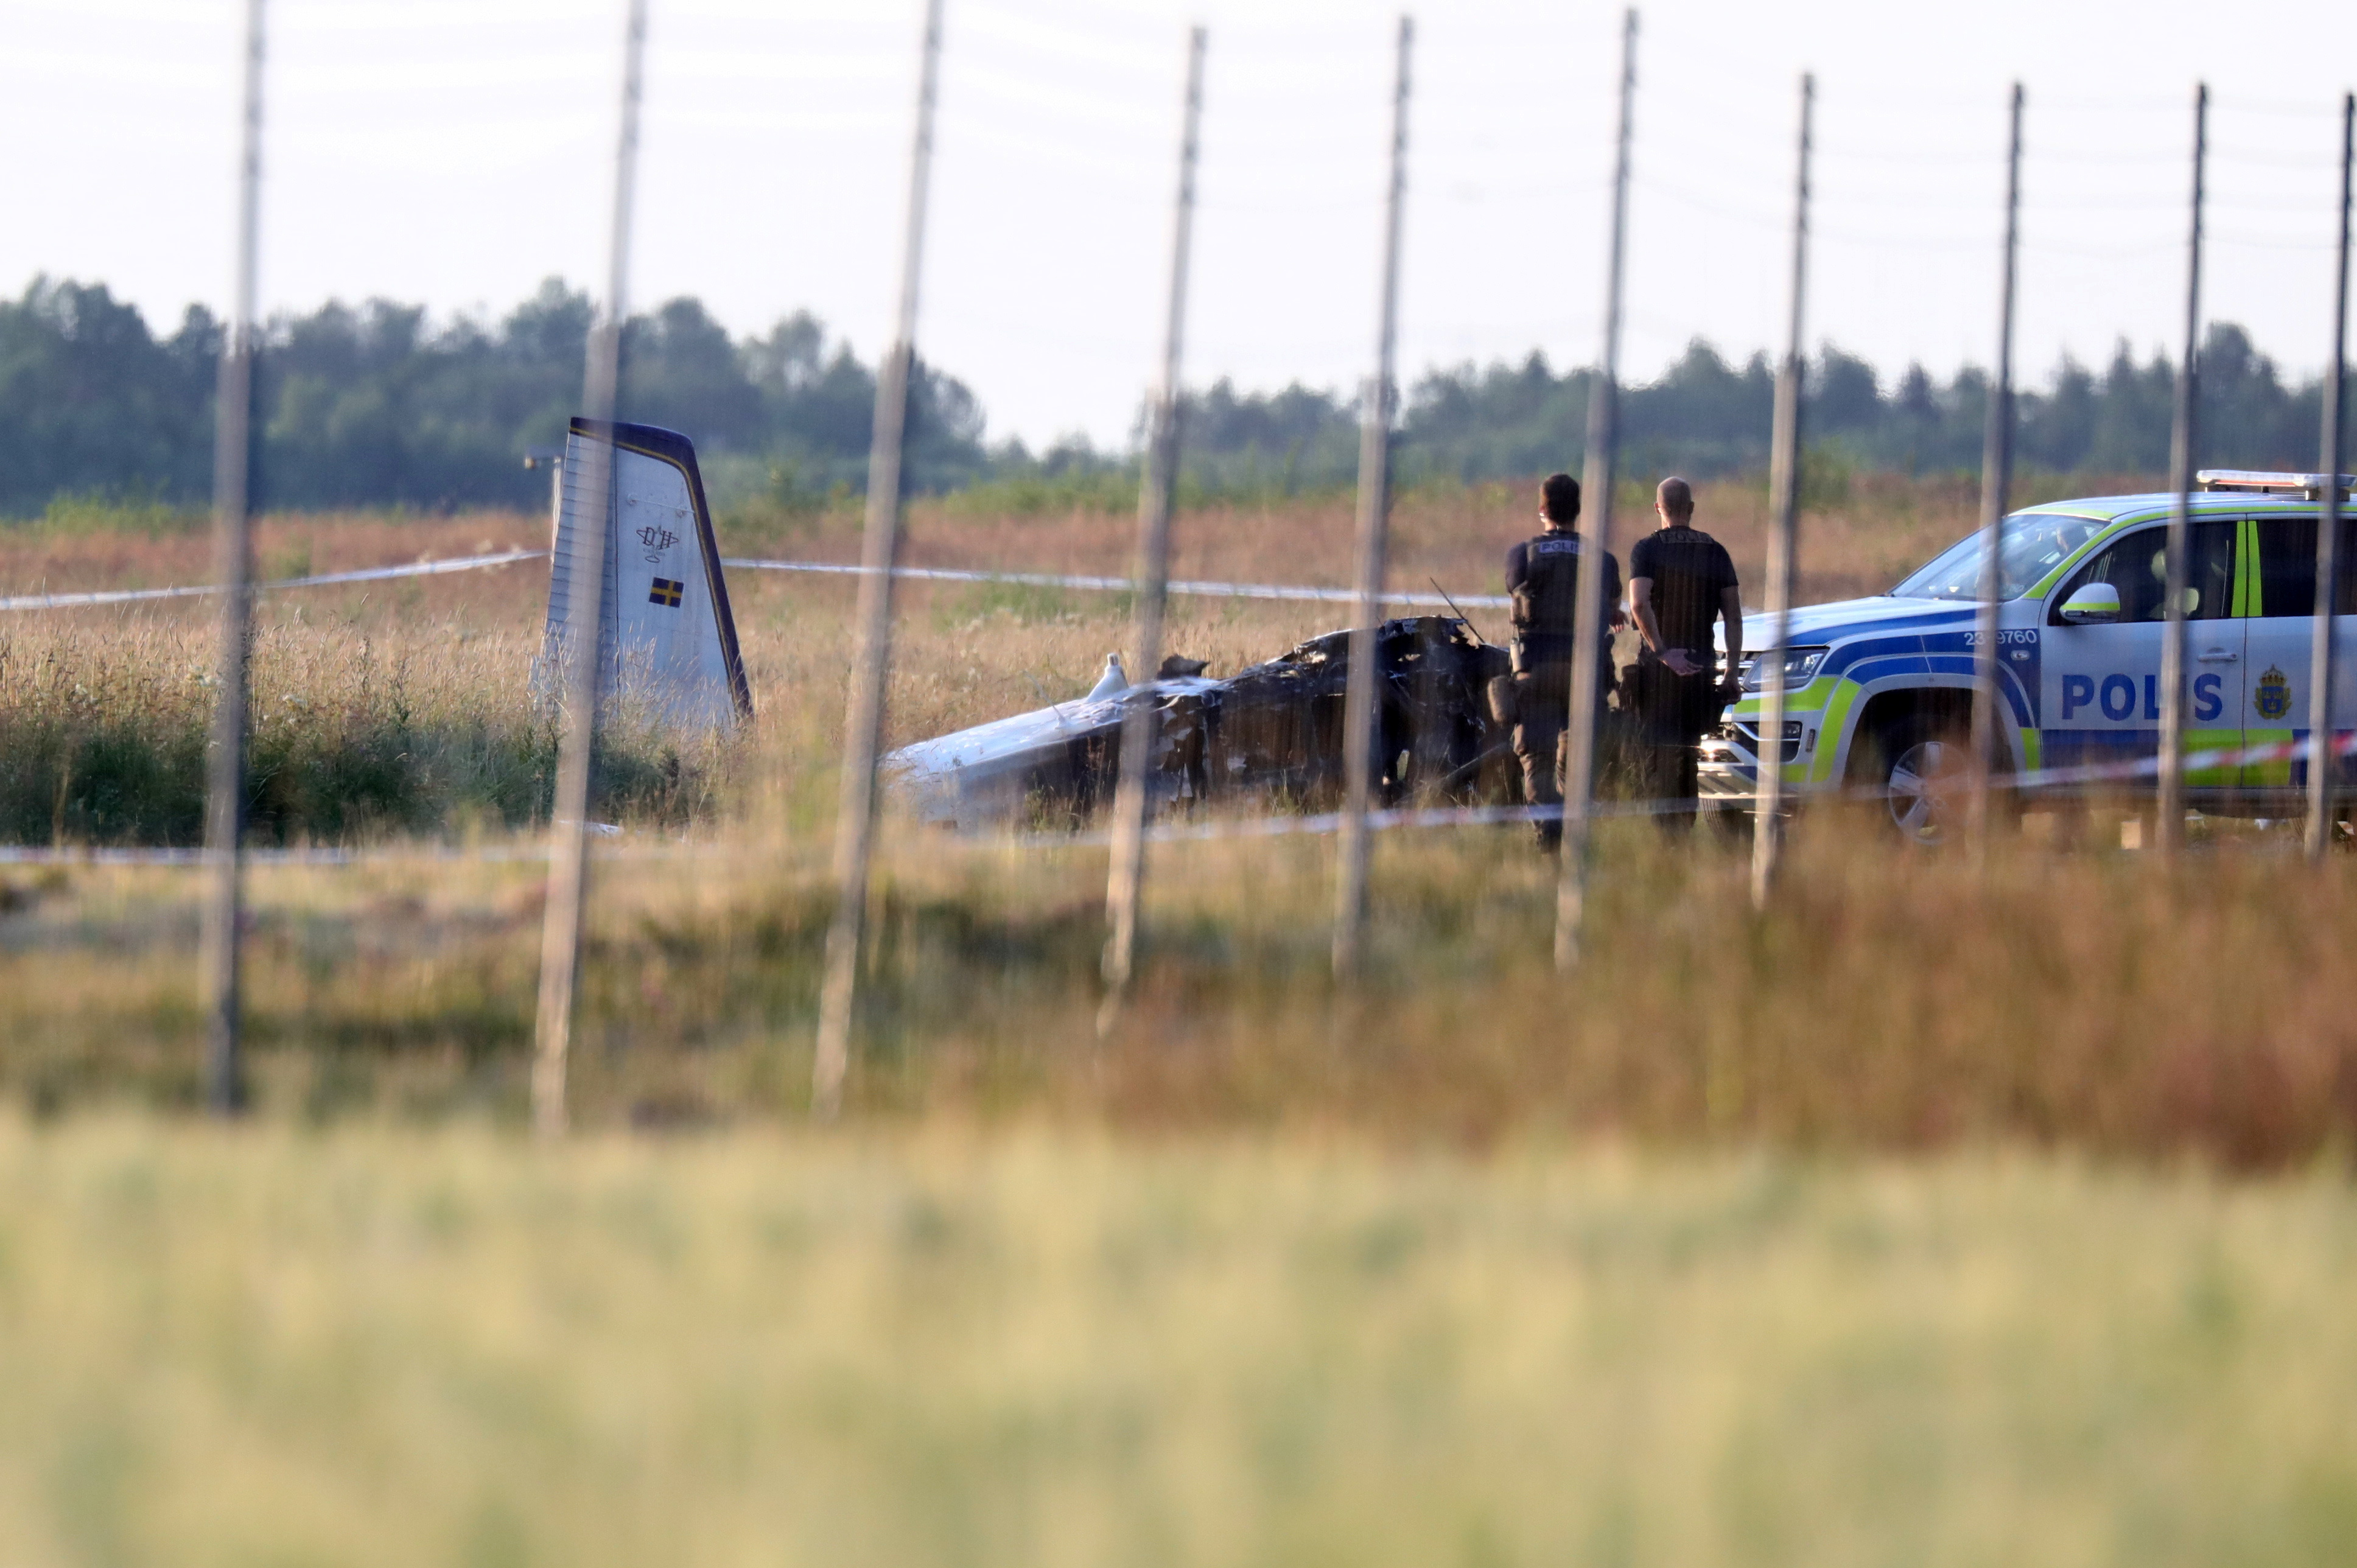 Police officers observe a small aircraft that crashed at Orebro Airport, Orebro, Sweden,  July 8 2021.  TT News Agency/Jeppe Gustafsson via REUTERS